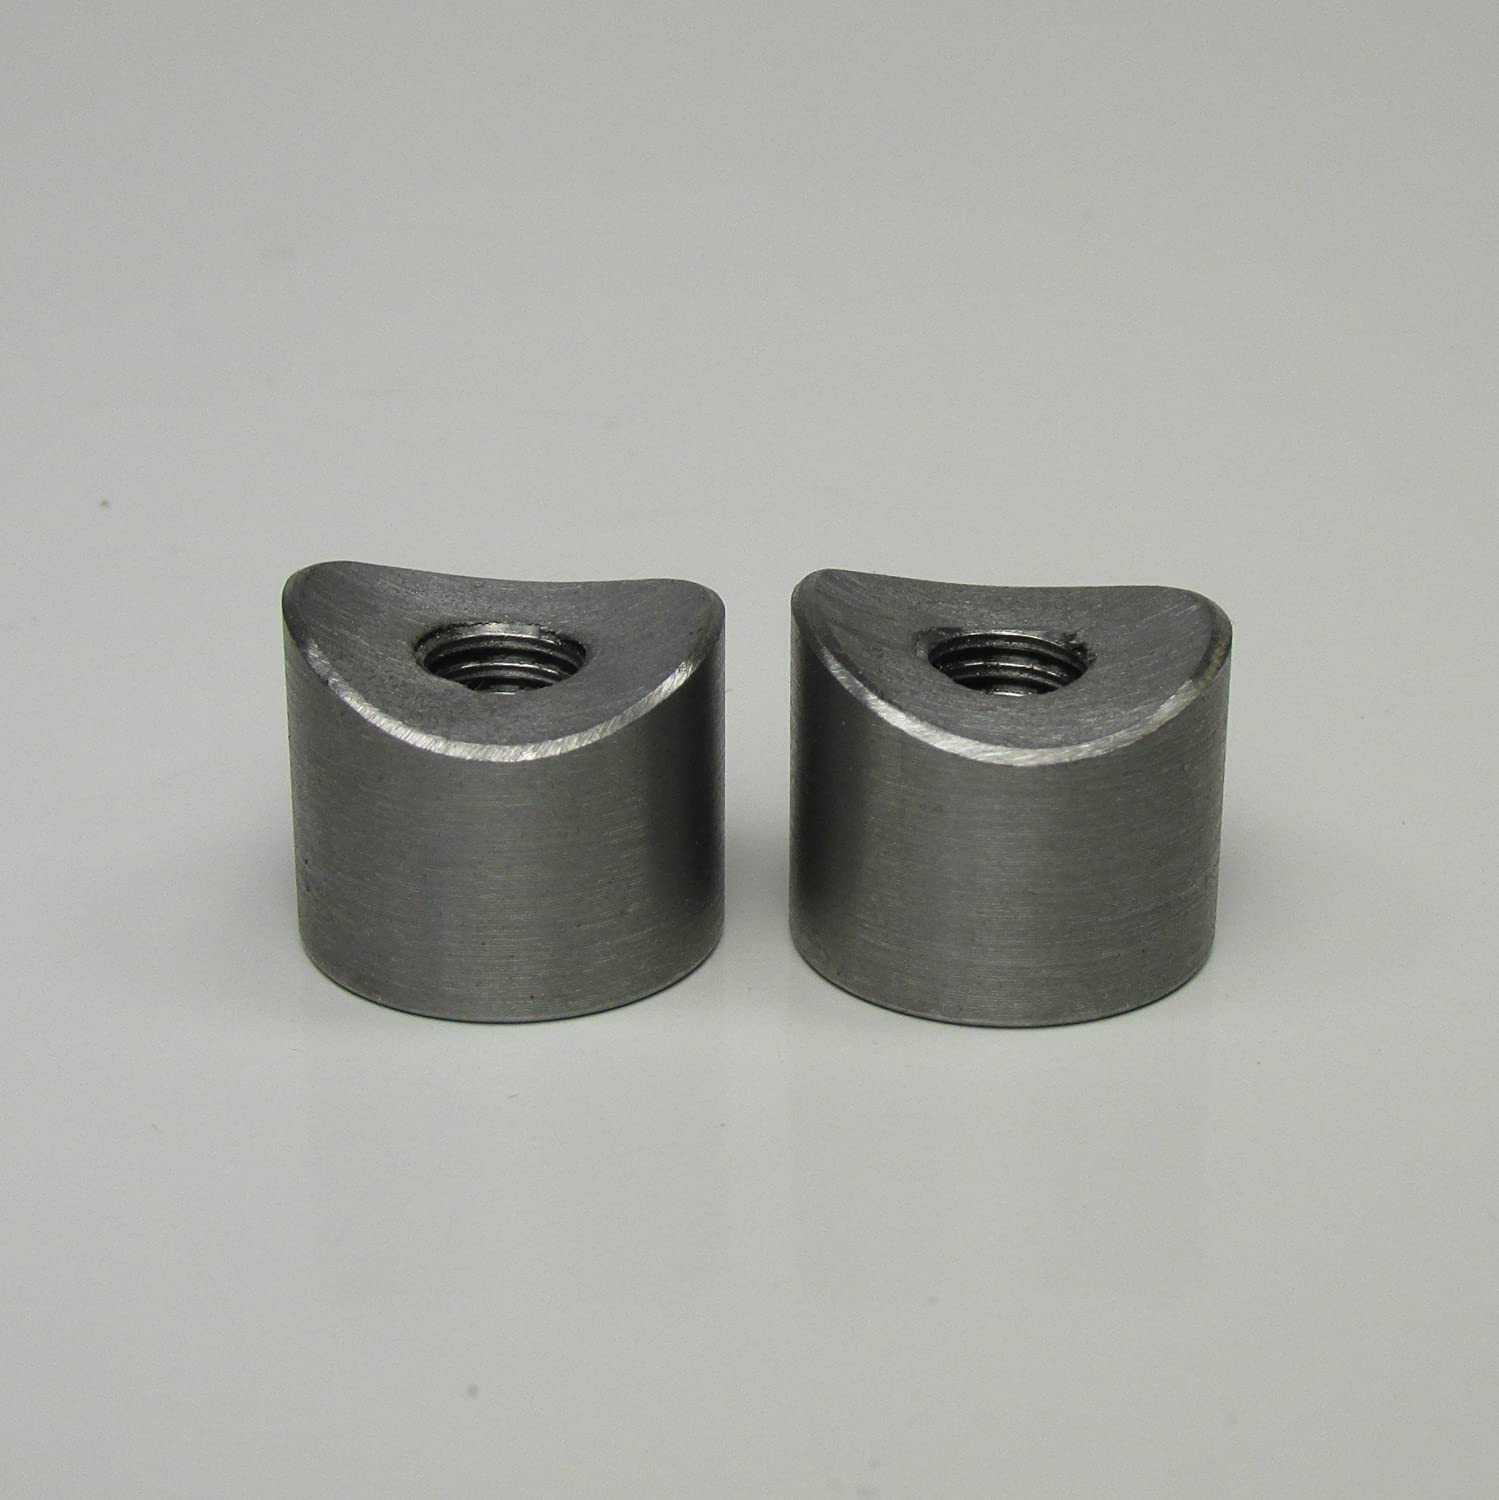 Fabrication Parts DIY Motorcycle Chopper Bobber Cafe Racer Builder Billet Proof Designs 22MM/_BNG/_ST 5//16-18 SHORT Coped Steel Bungs Fits 1 to 1-1//4 Round Tubing QUANTITY OF 2 MADE IN THE USA